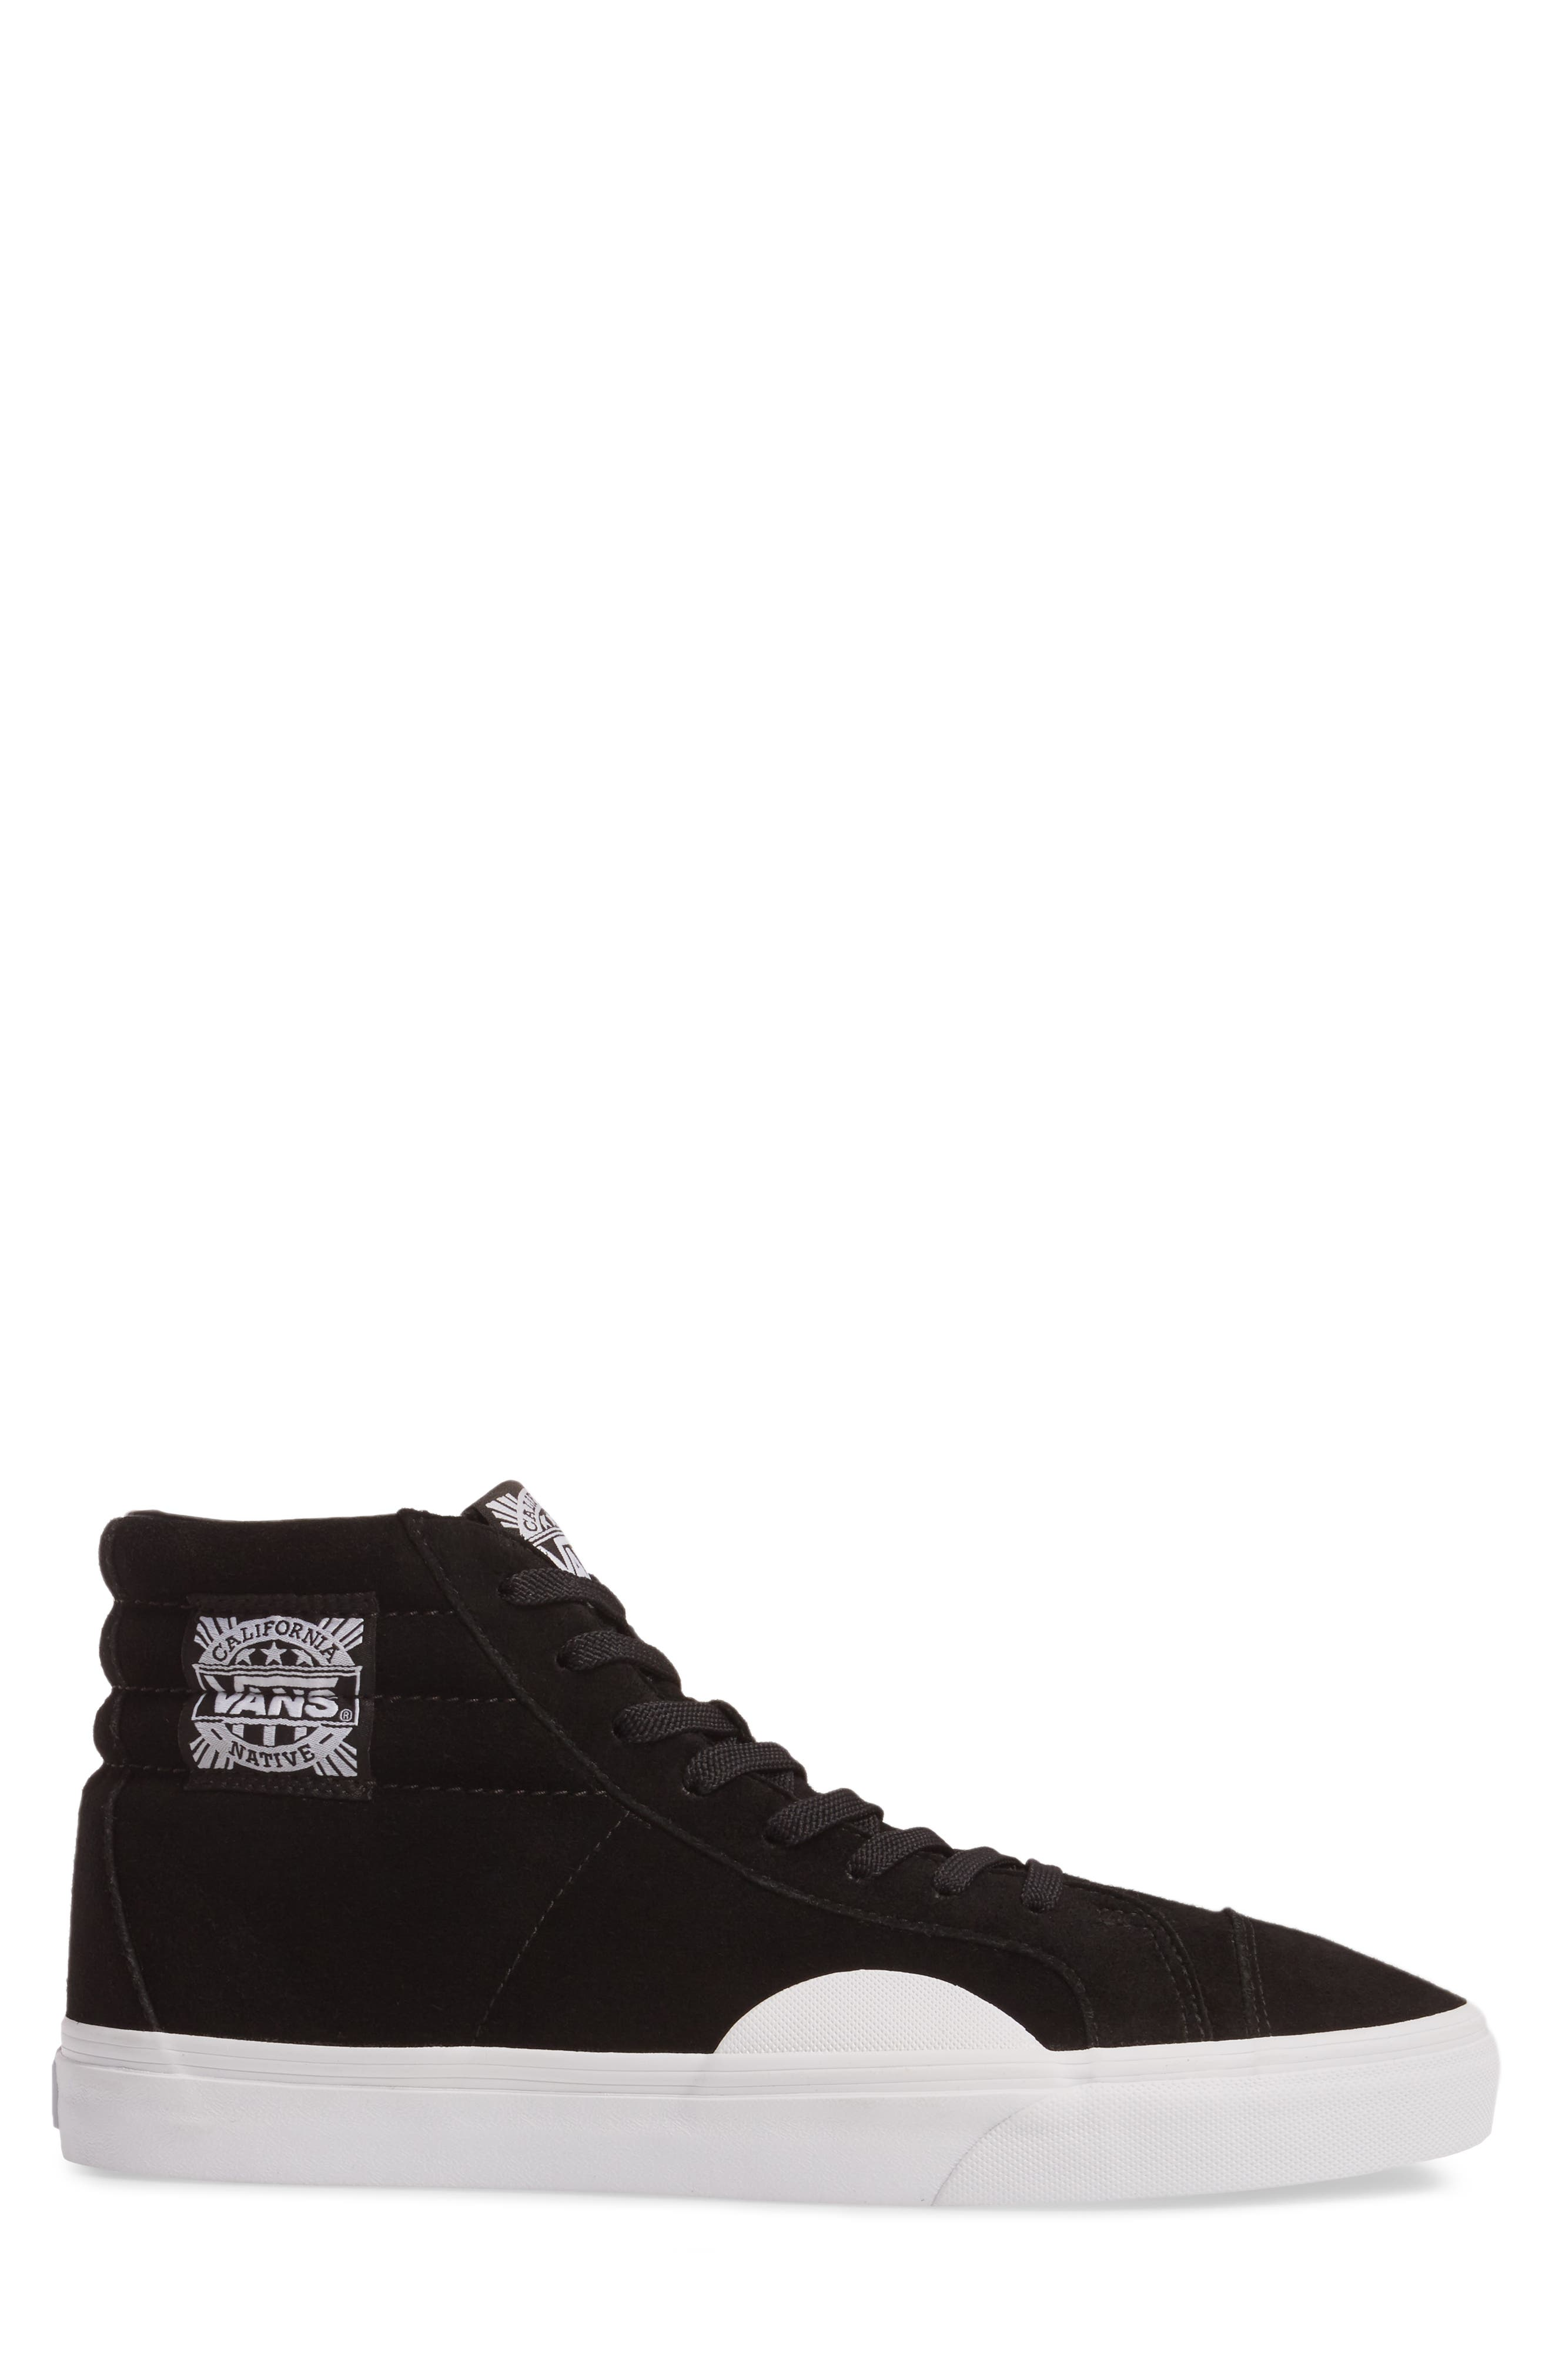 Style 238 Sneaker,                             Alternate thumbnail 3, color,                             Black/ White Suede